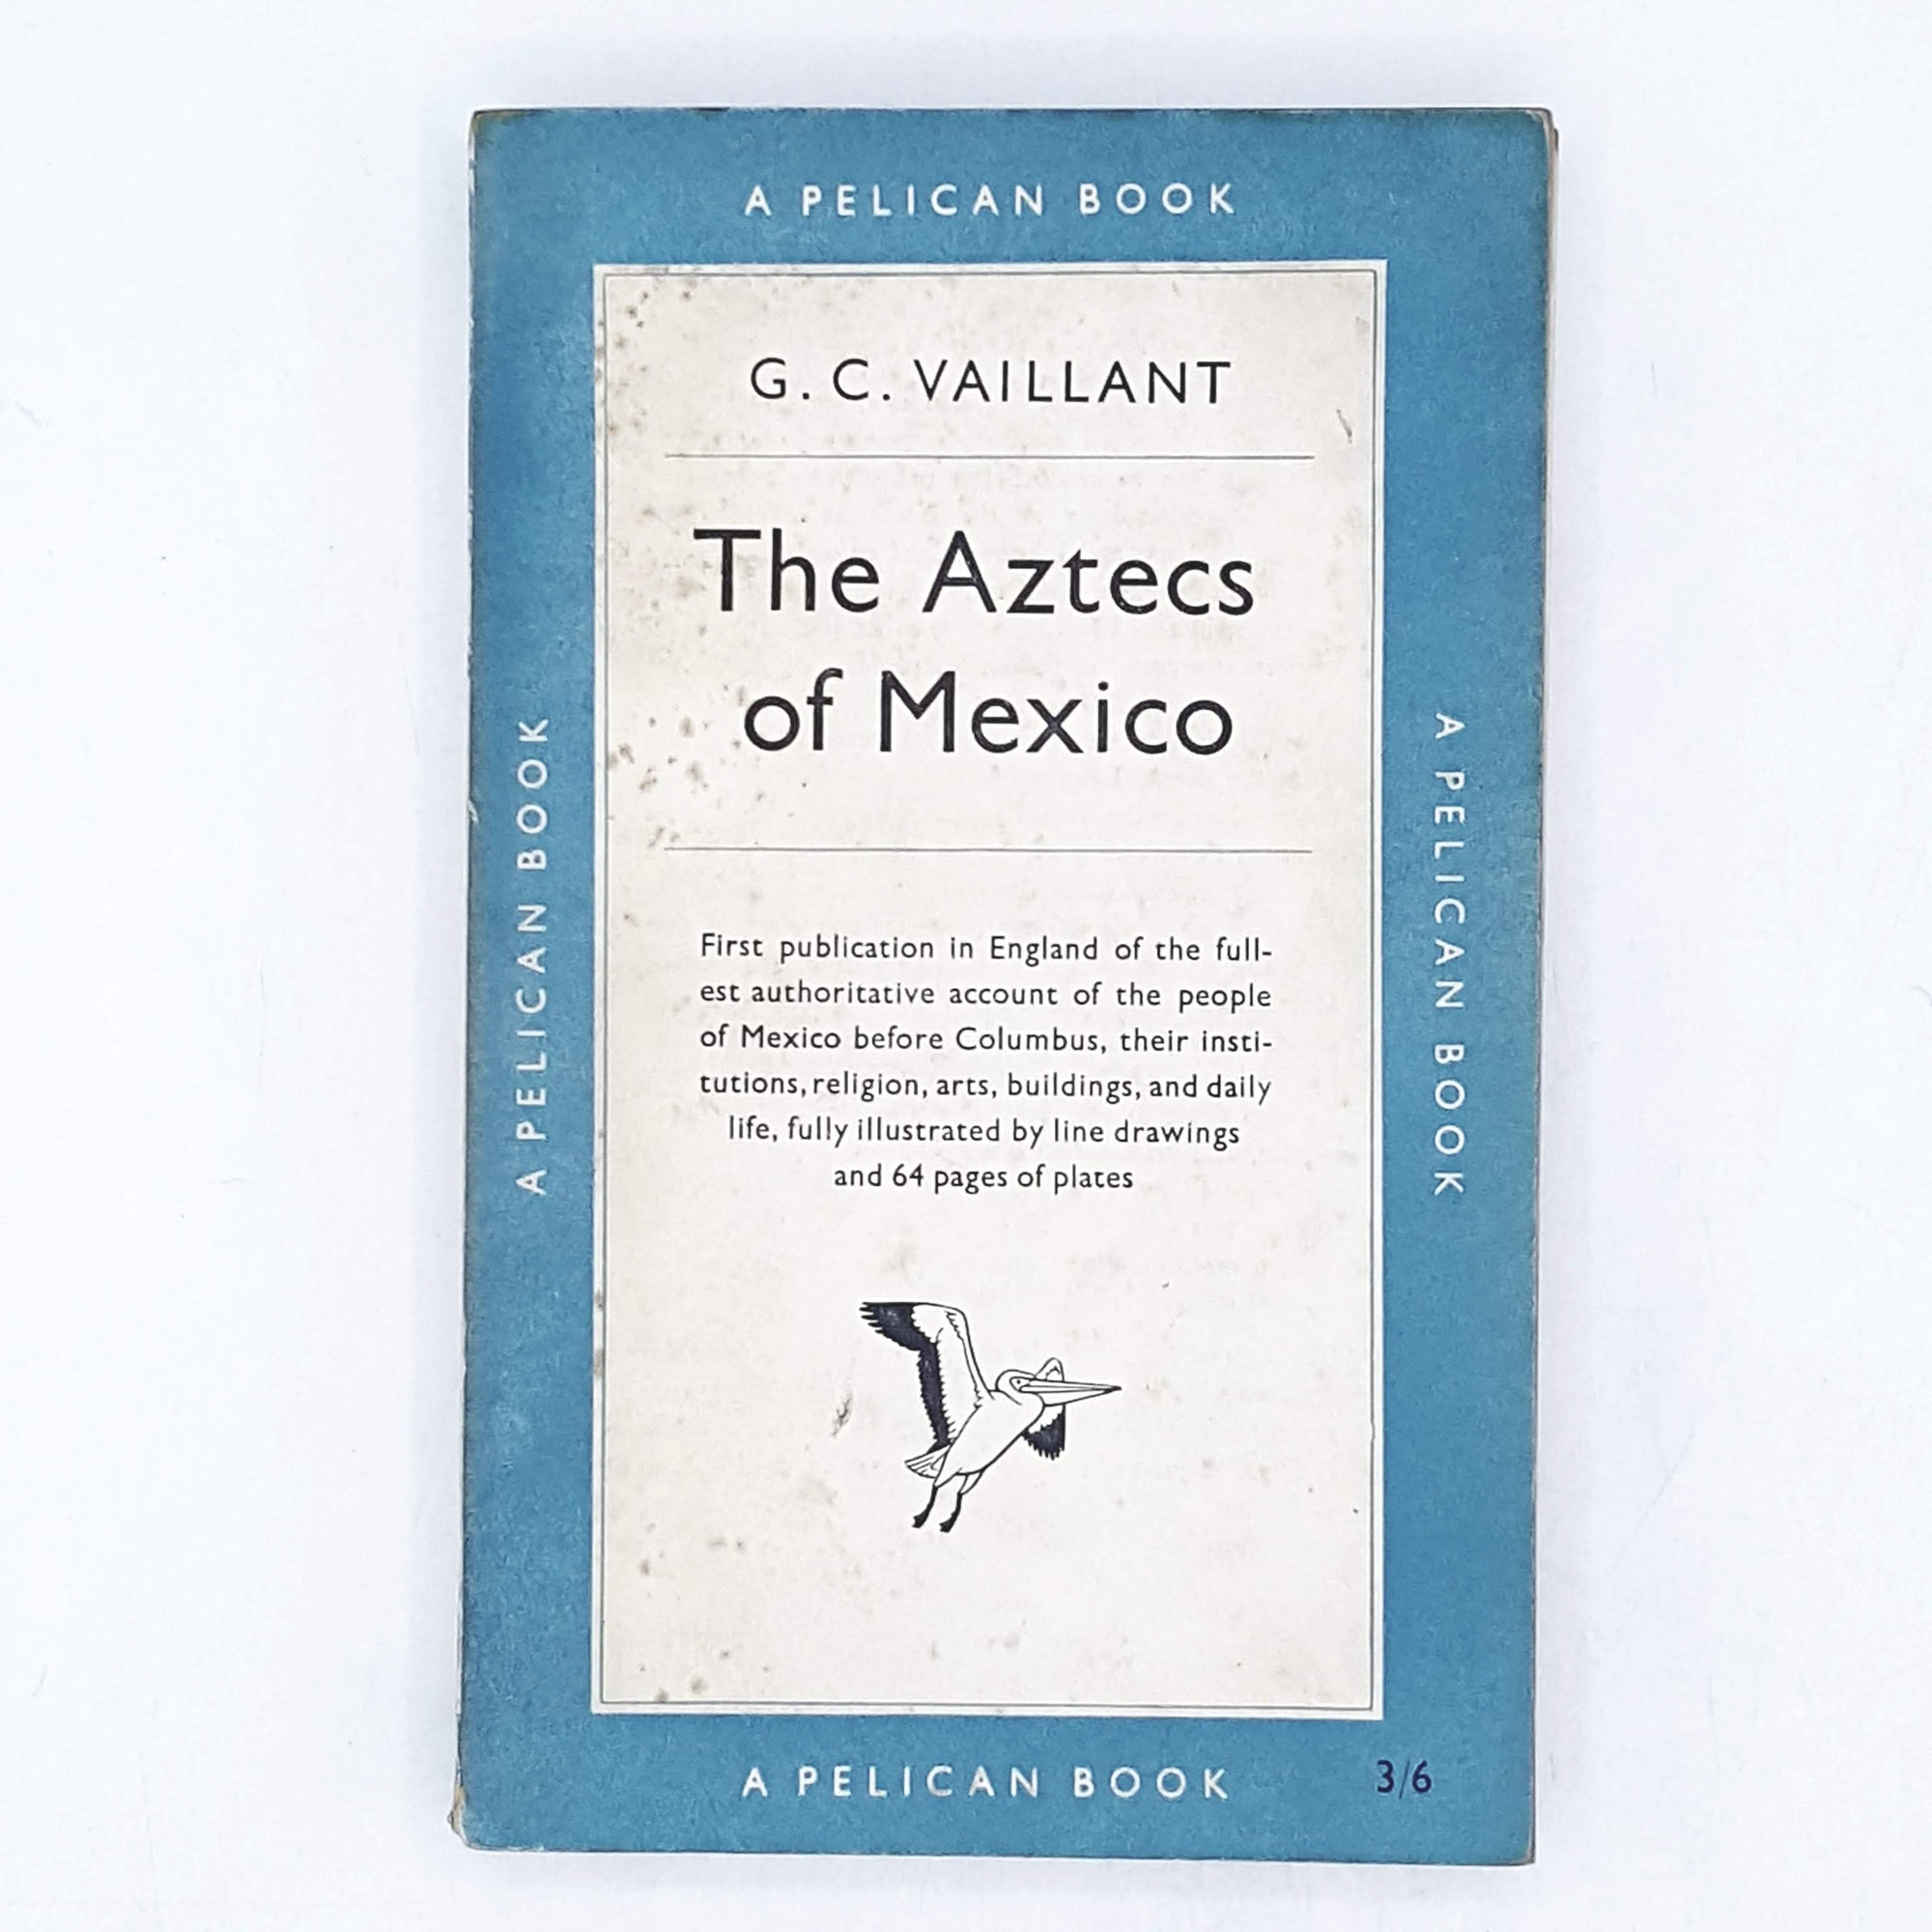 The Aztecs of Mexico by G. C. Vaillant 1951